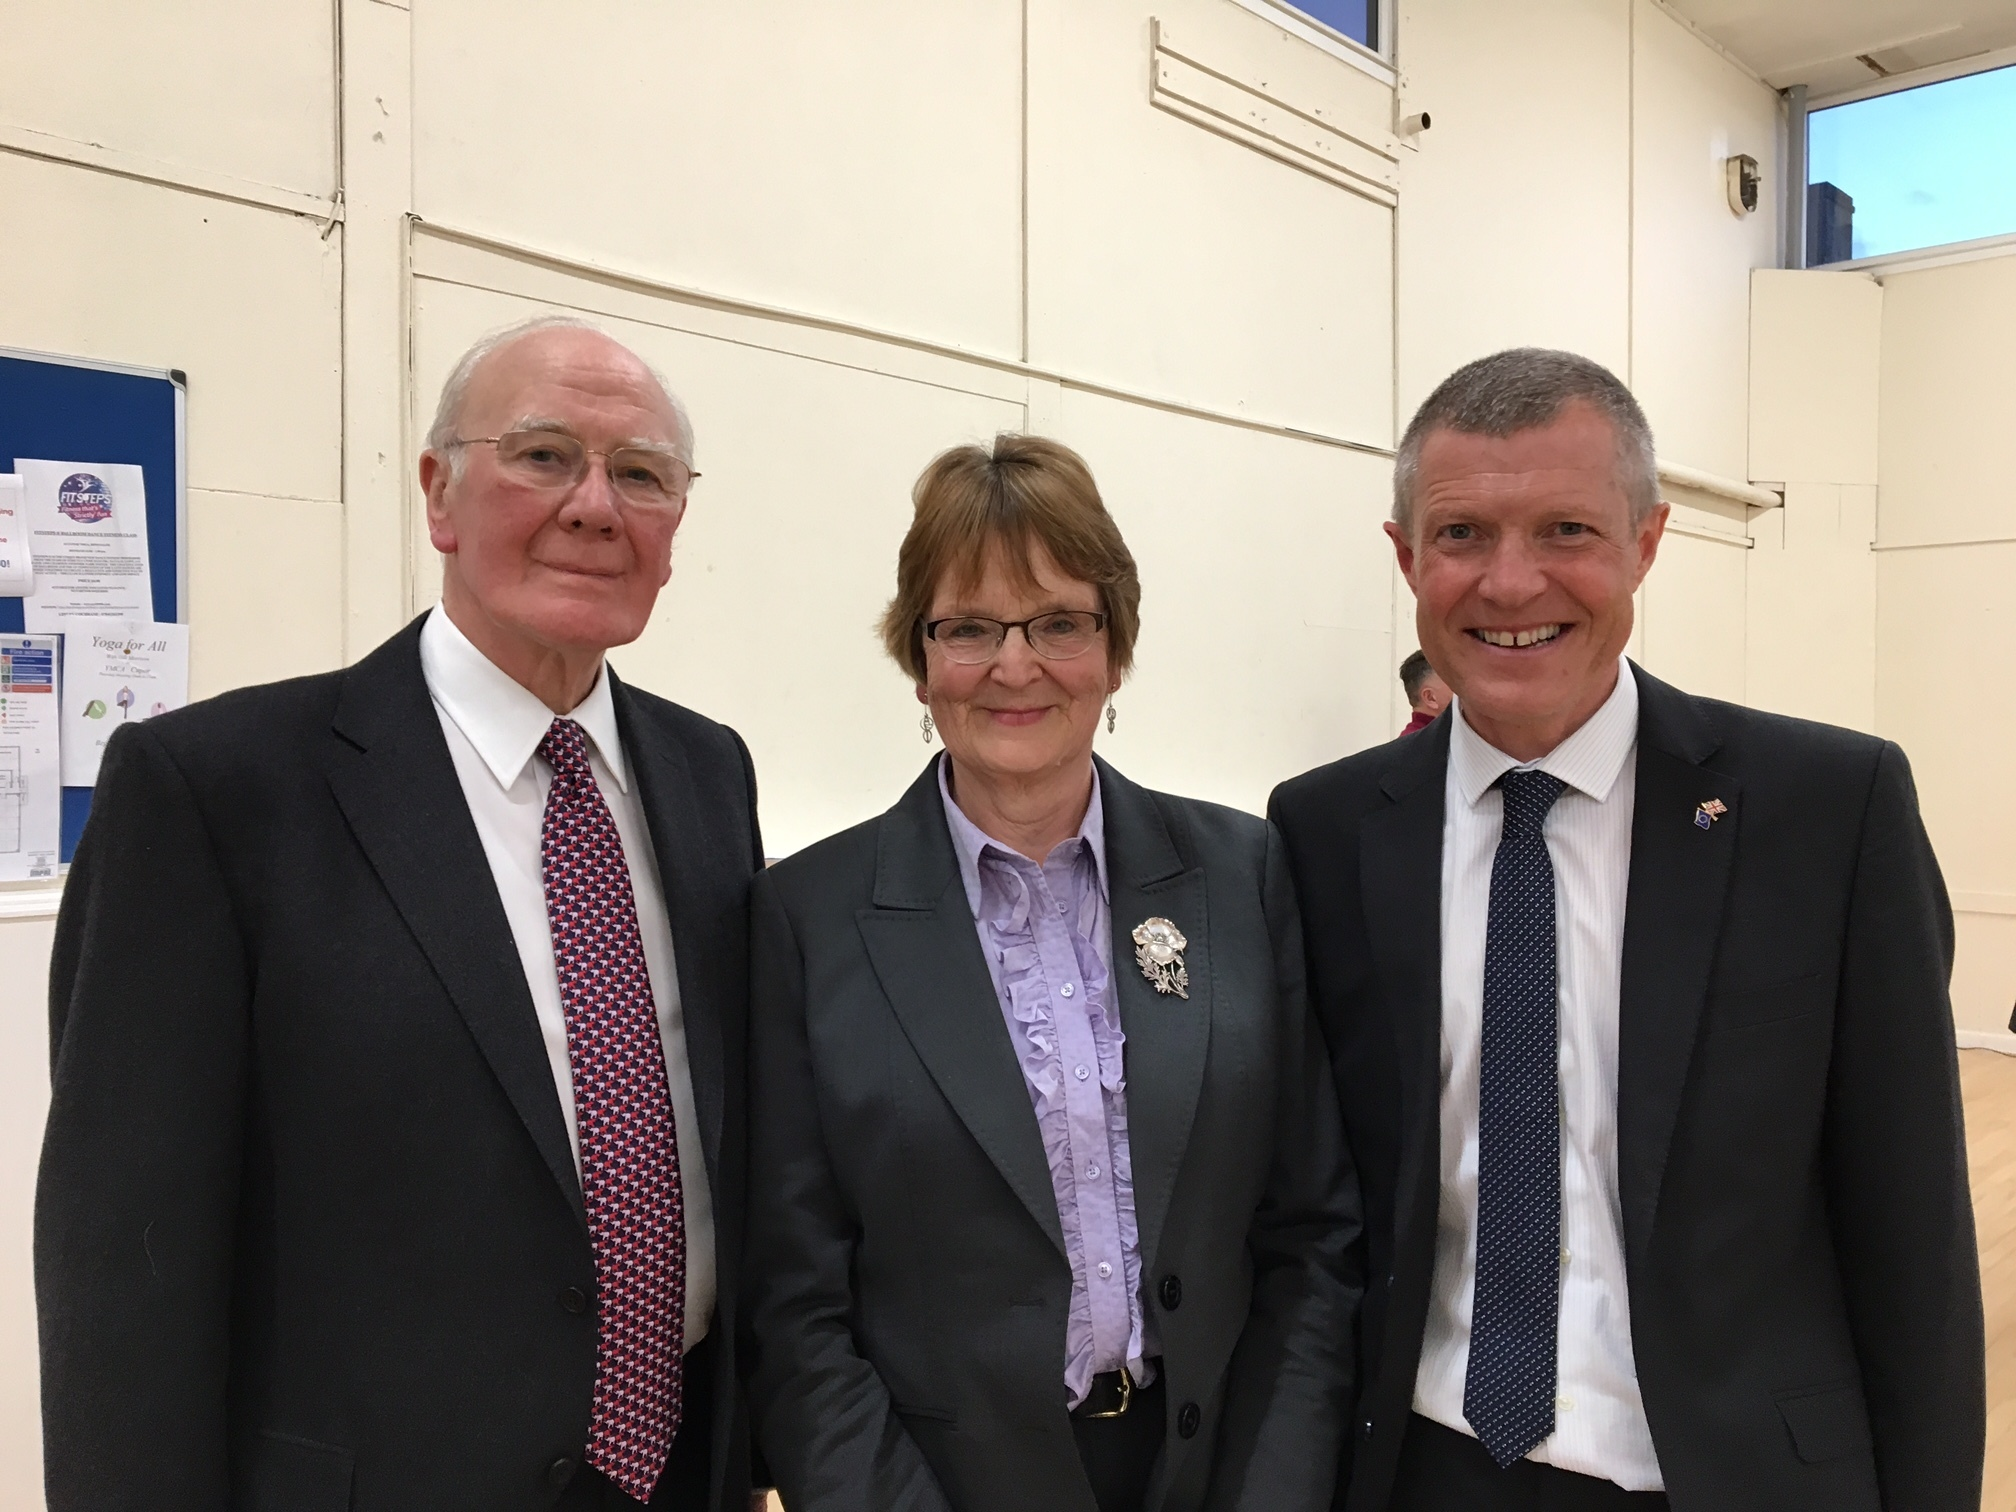 North East Fife Liberal Democrat candidate Elizabeth Riches with Scottish leader Willie Rennie and former North East Fife MP Sir Menzies Campbell